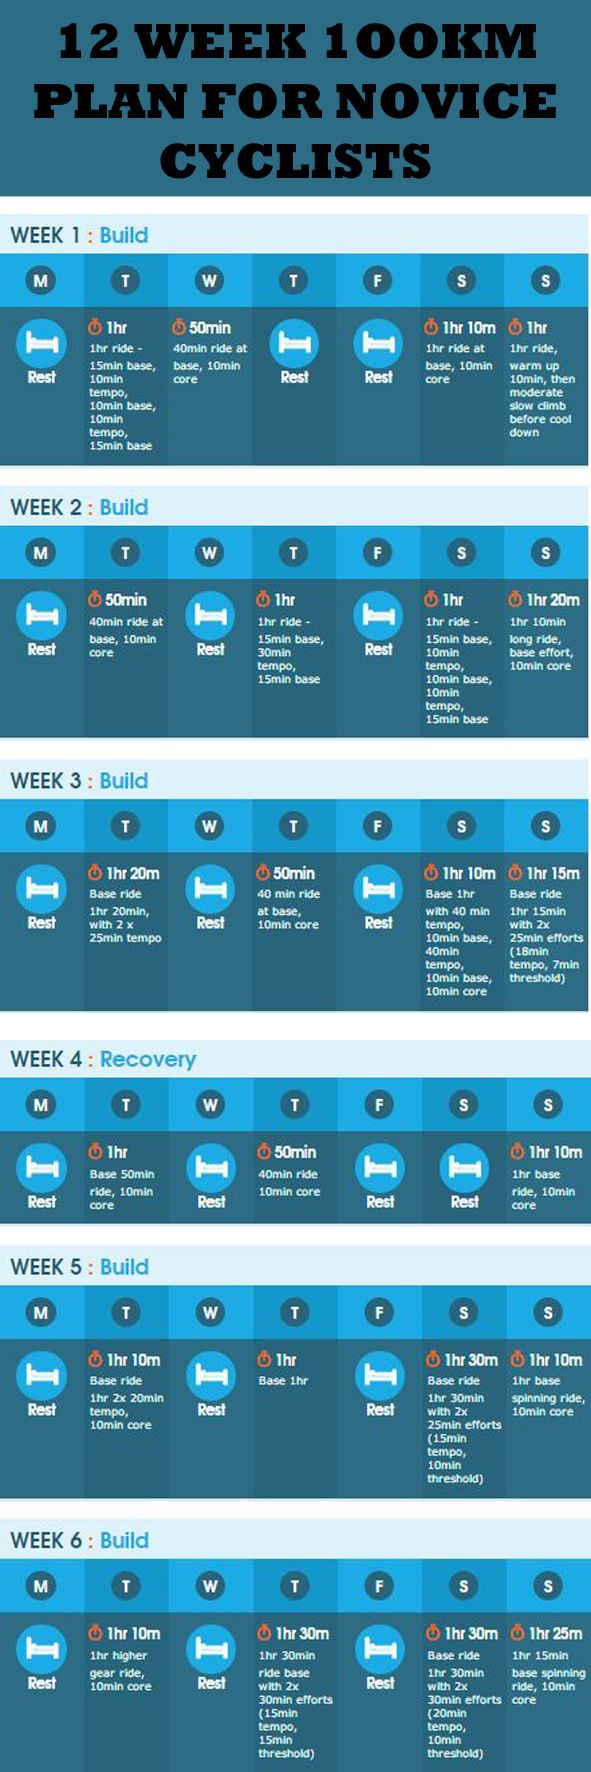 12 WEEK 1OOKM PLAN FOR NOVICE CYCLISTS: http://thecyclingbug.co.uk/health-and-fitness/training-plans/b/weblog/archive/2015/02/16/12-week-novice-100km-training-plan.aspx?utm_source=Pinterest&utm_medium=Pinterest%20Post&utm_campaign=ad #cycling #bike #bicycle #cyclingplan #fitness #exercise